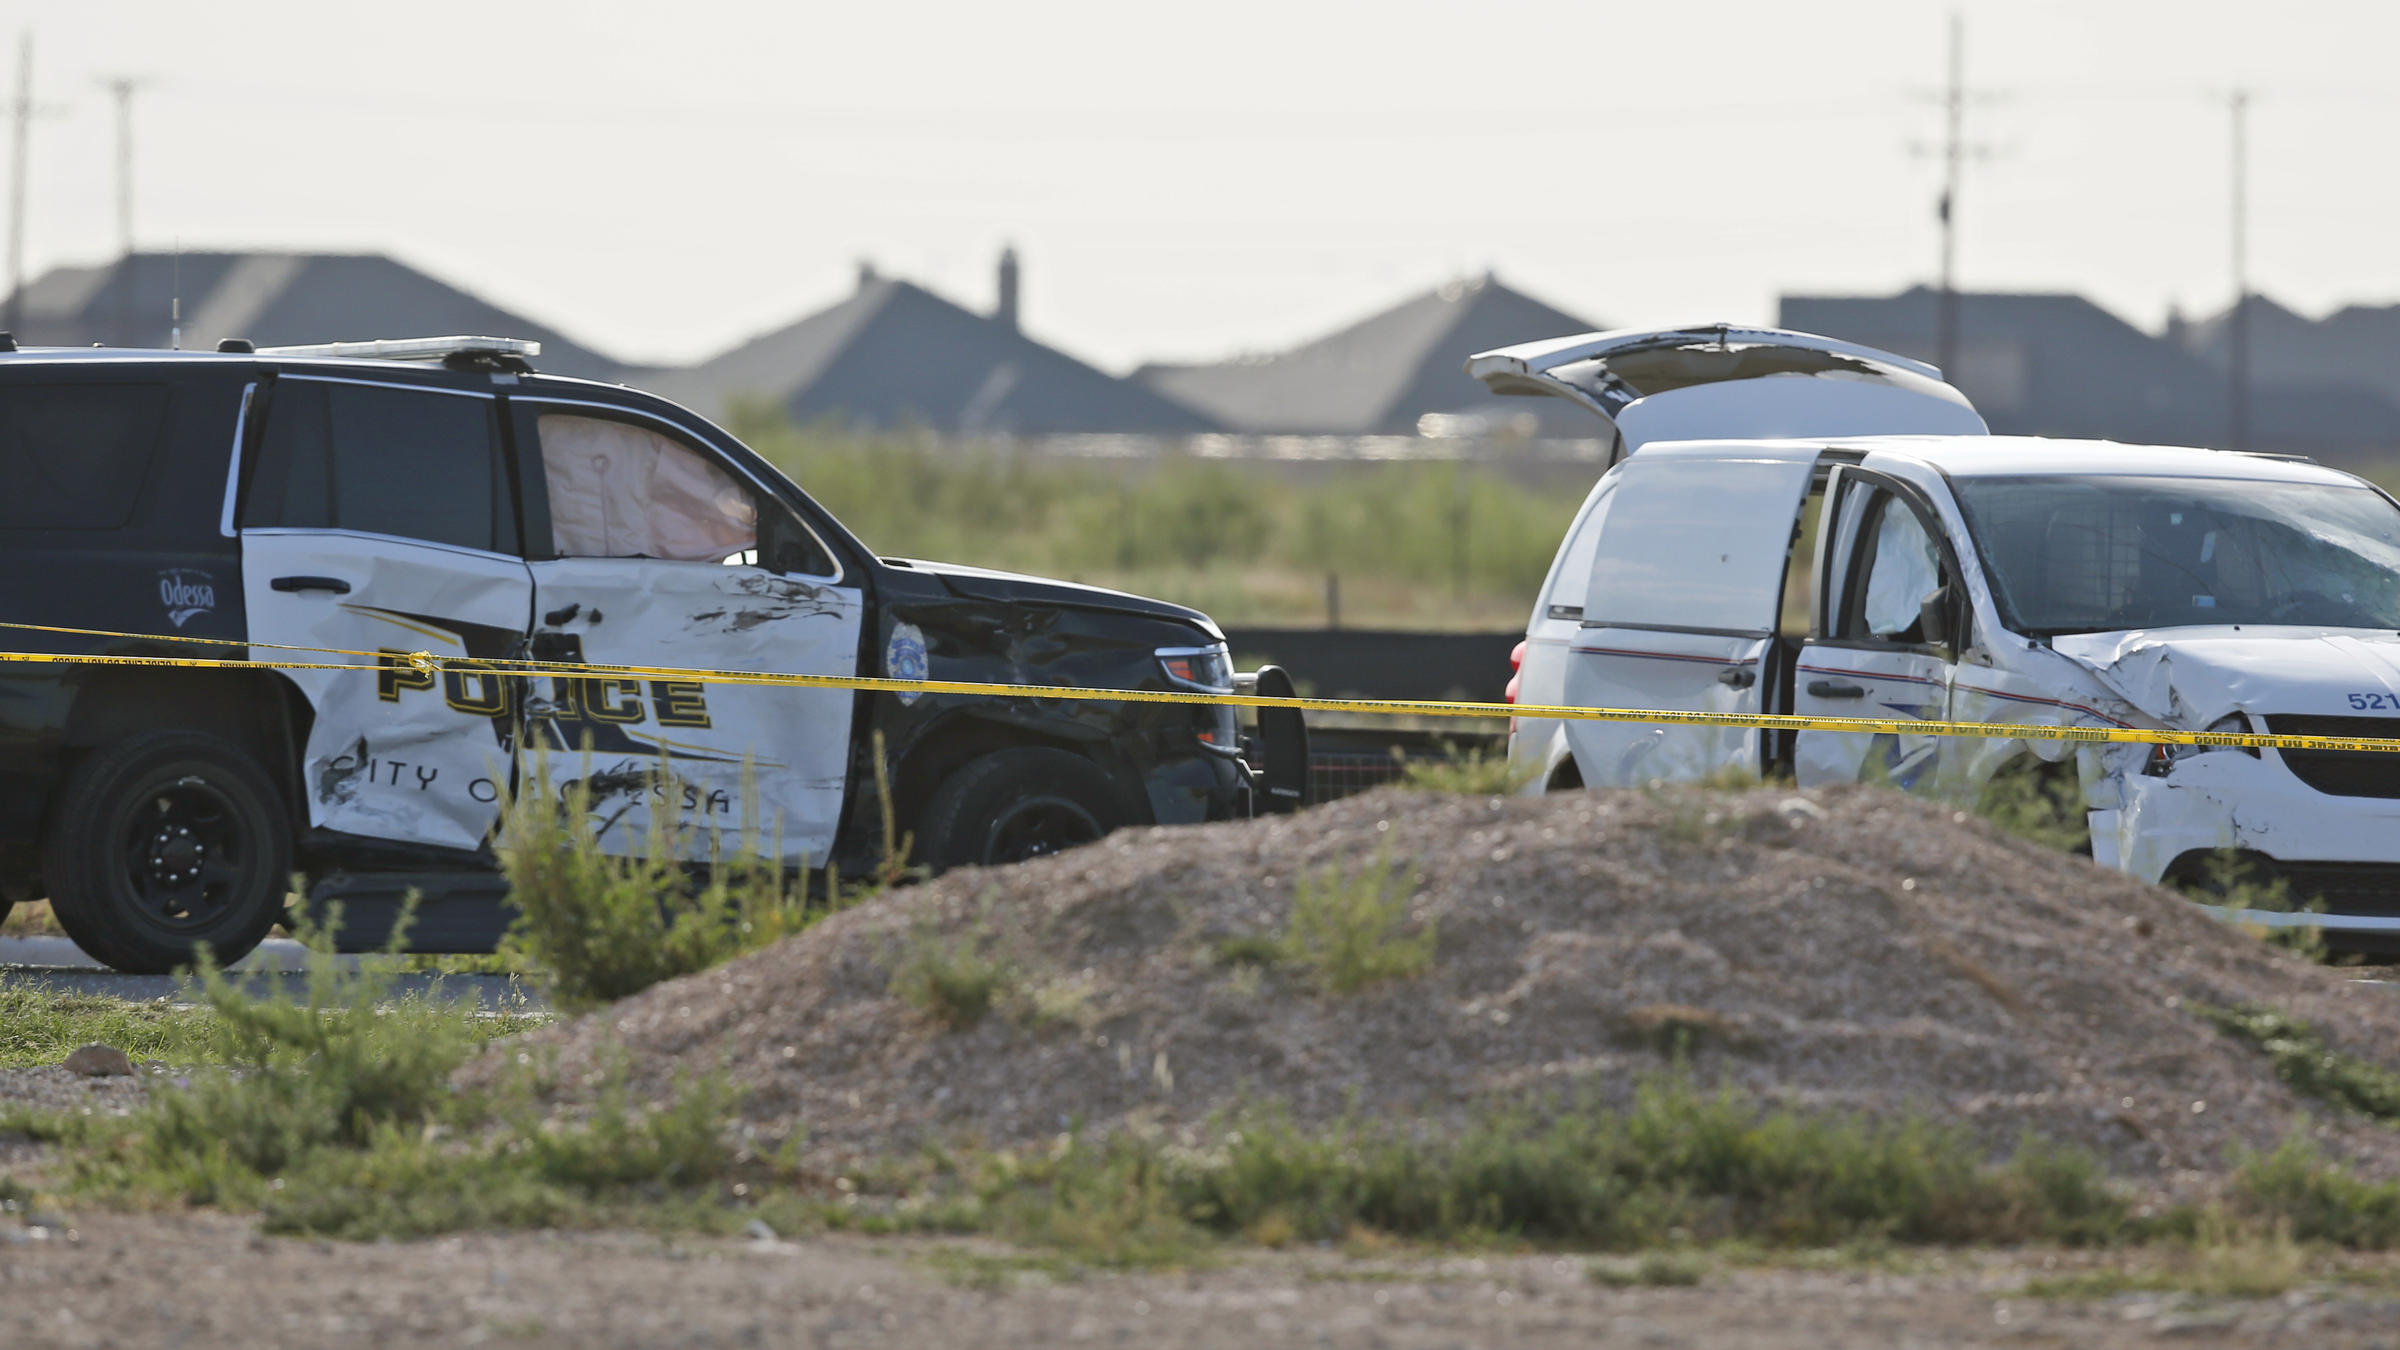 Police identify Texas gunman in attack that left 7 dead